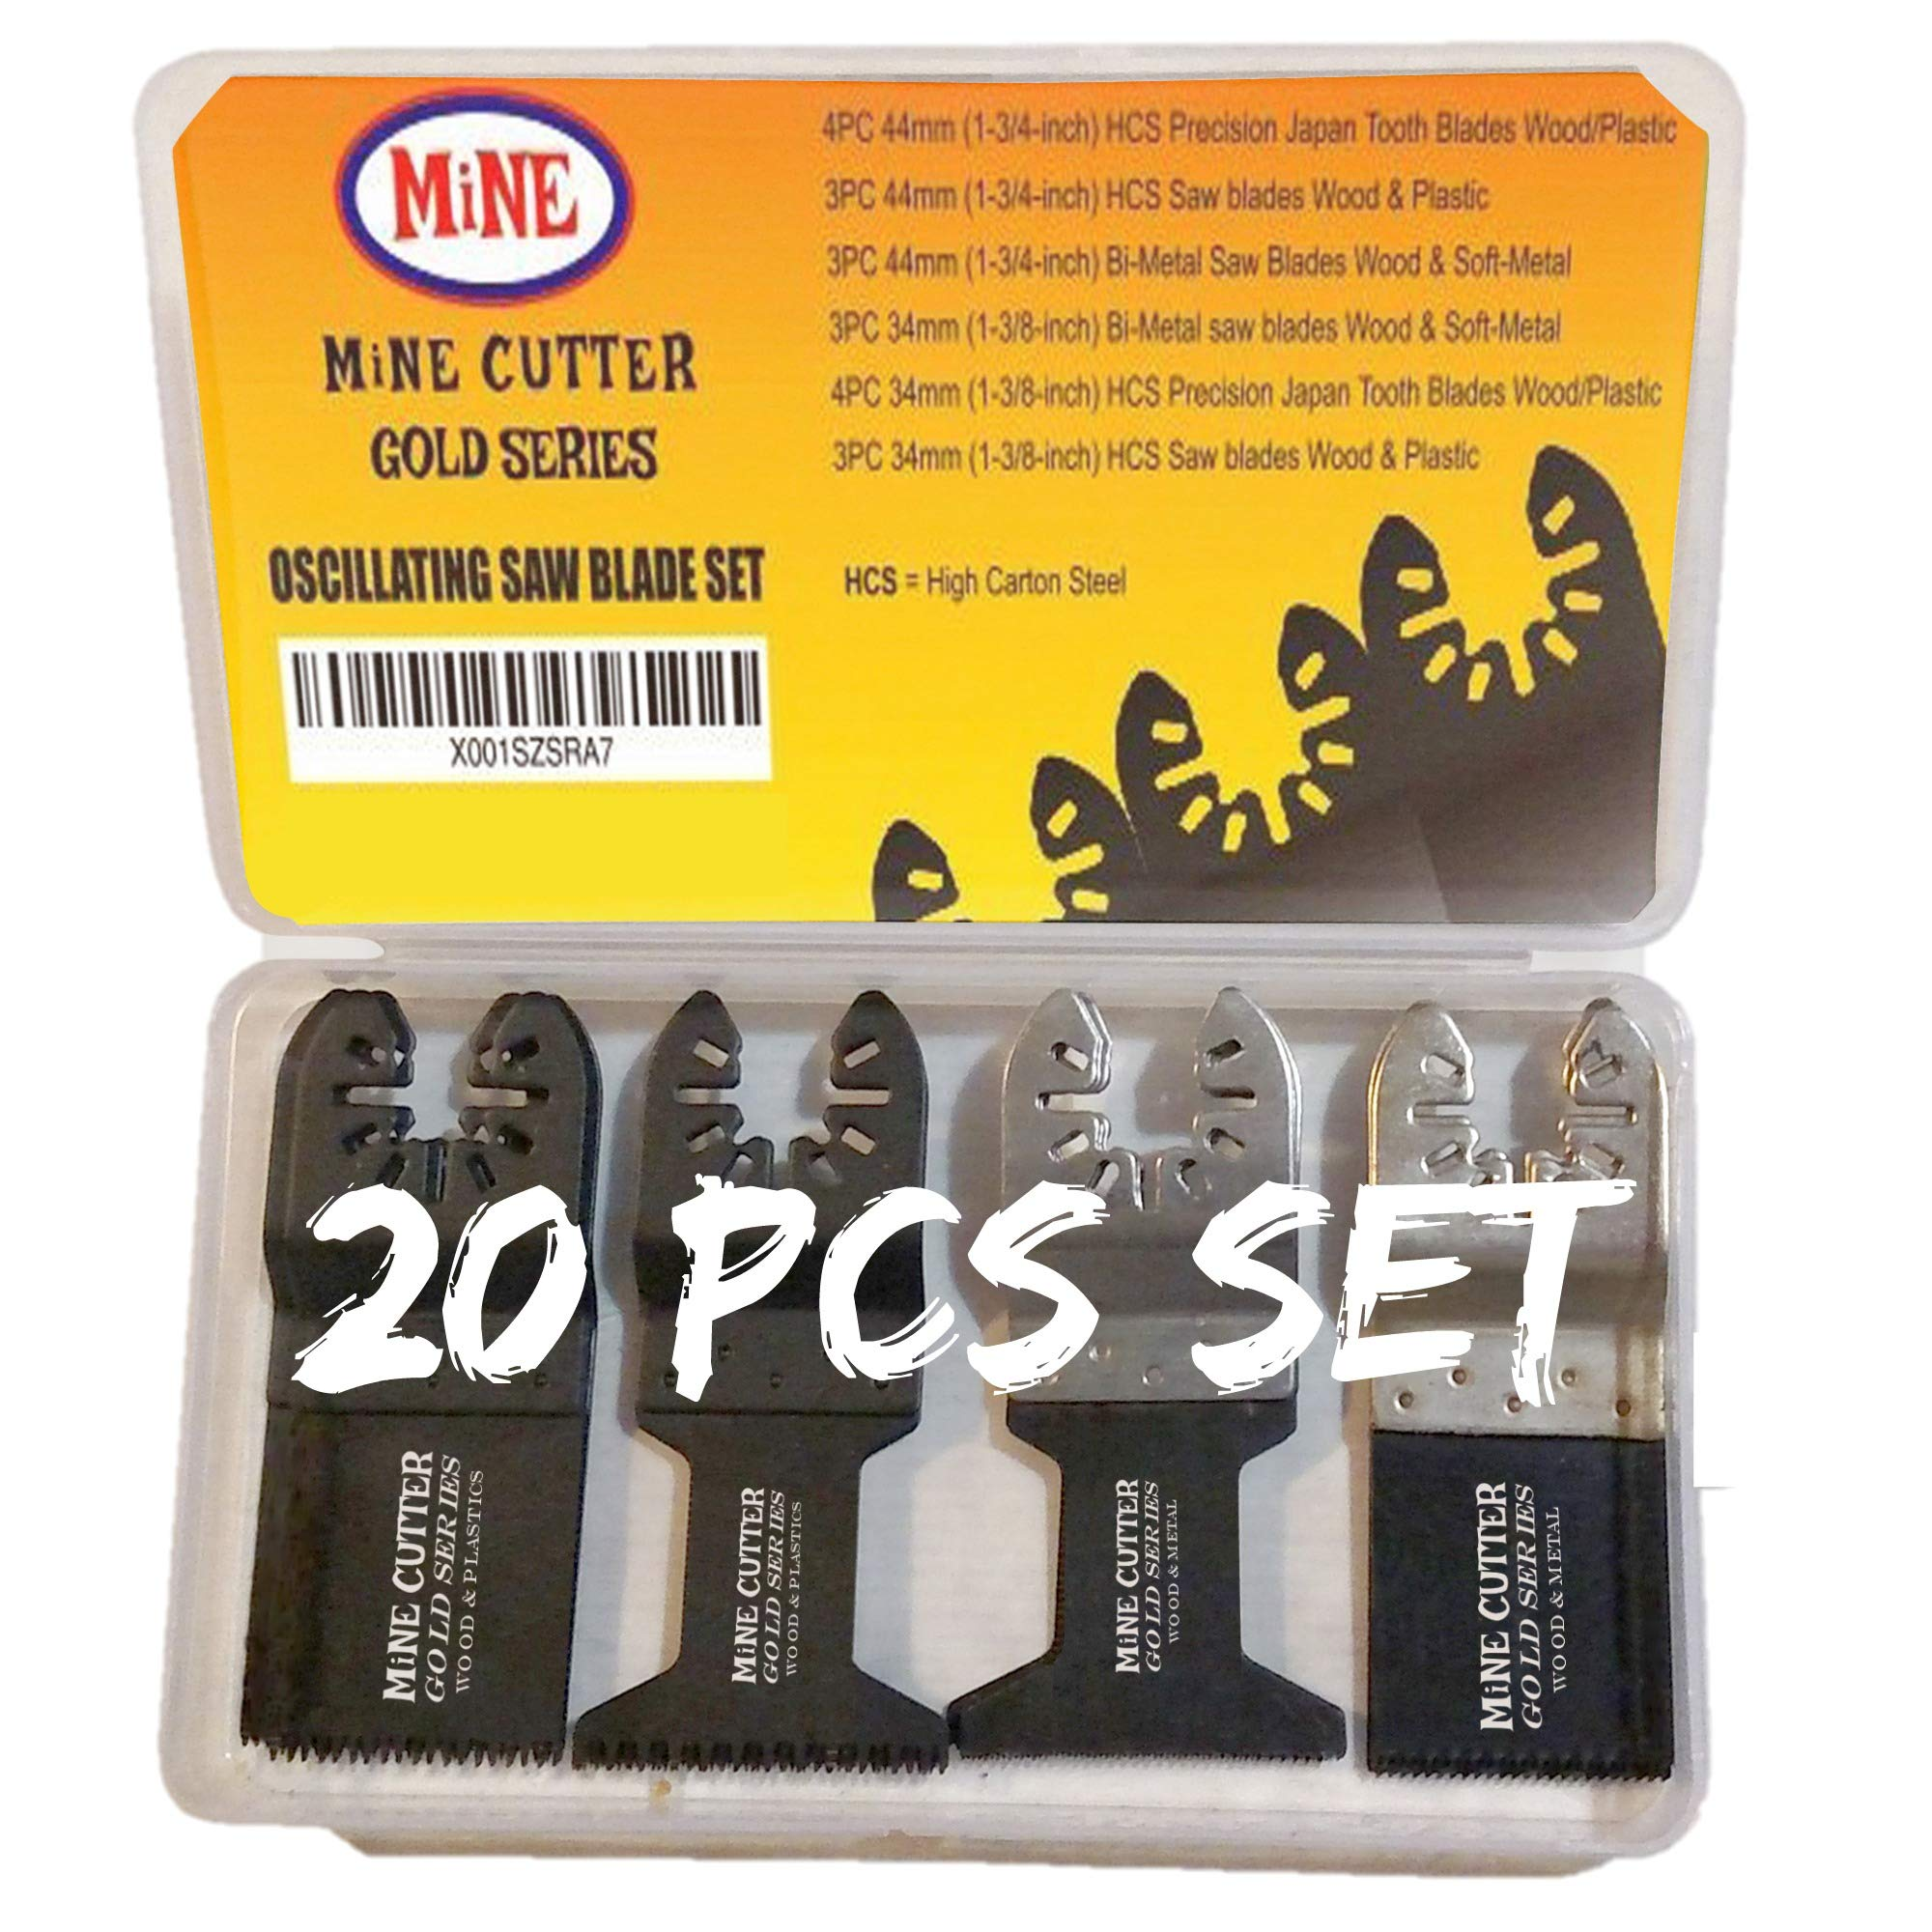 20 Oscillating Saw Blades for Quick Release Multitool: Fits Fein Multimaster Makita Milwaukee Dewalt Rockwell Hyperlock Ryobi Porter Cable Black & Decker Dremel Craftsman Ridgid Chicago Stanley Skil